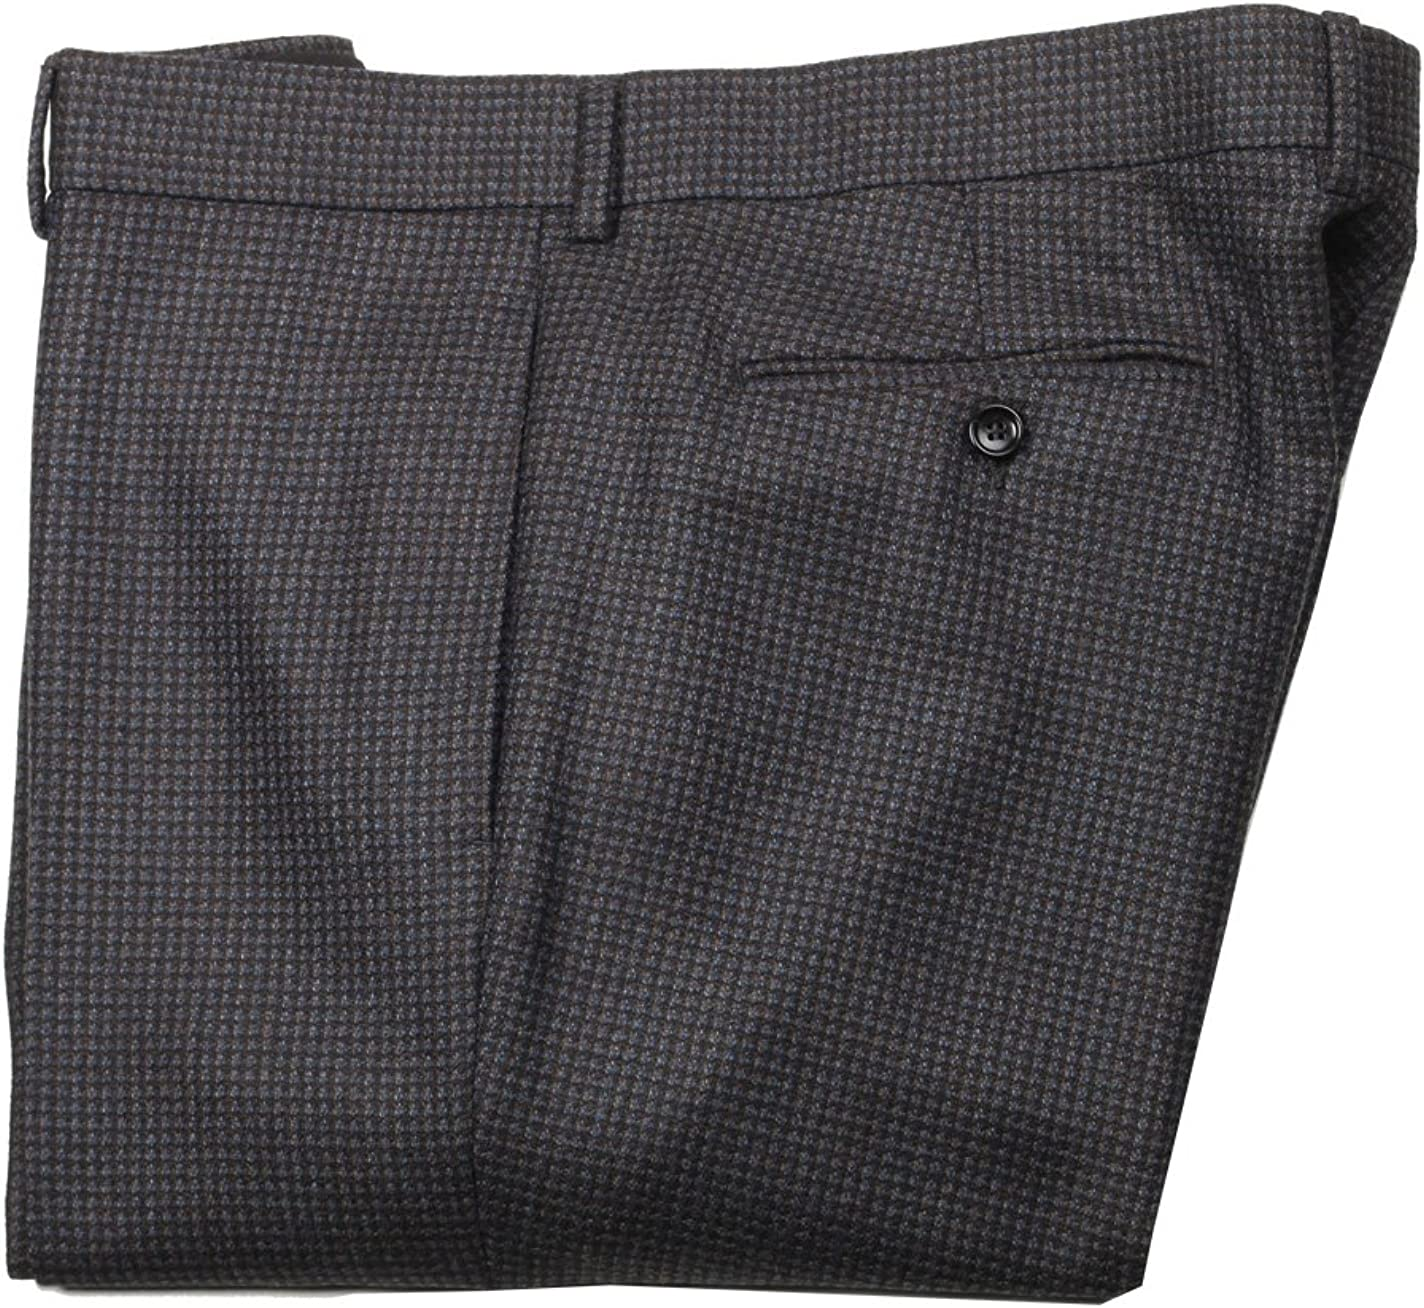 Gucci CL Gray Trousers Size 54/38 U.S. In Wool